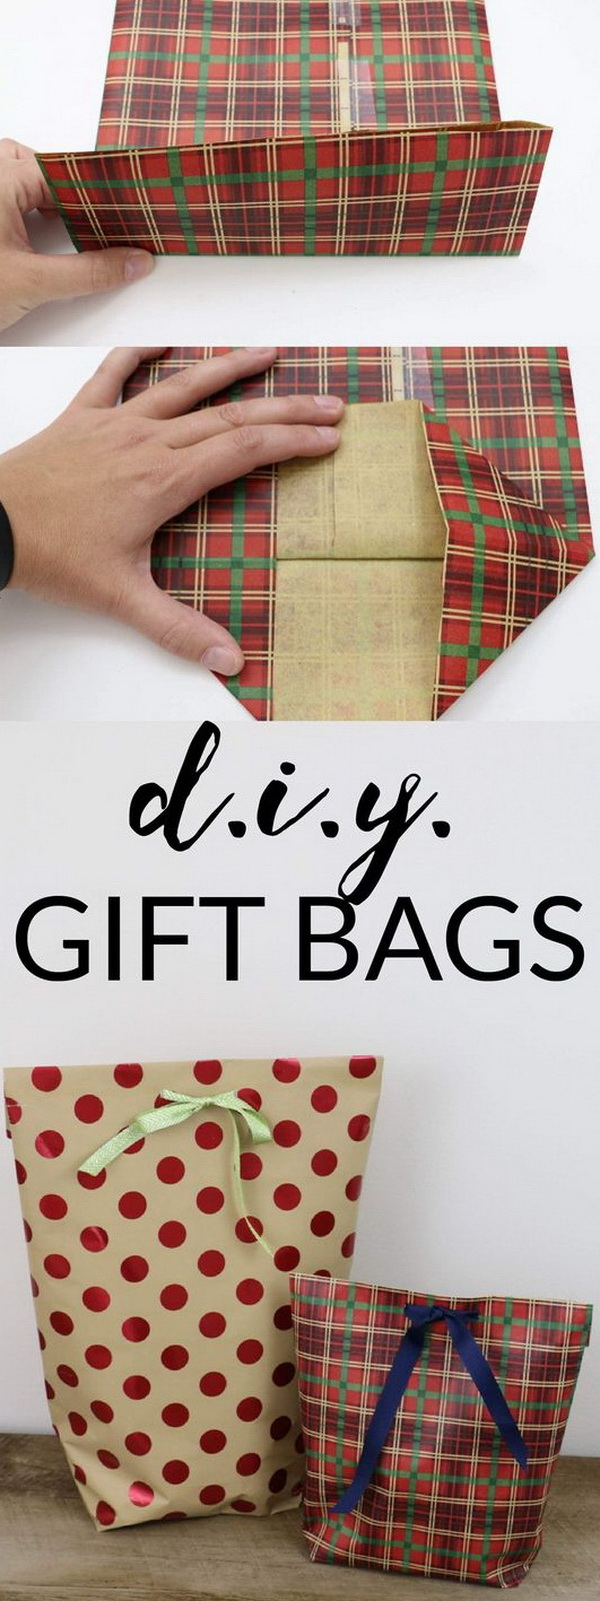 DIY Gift Bags for Christmas.